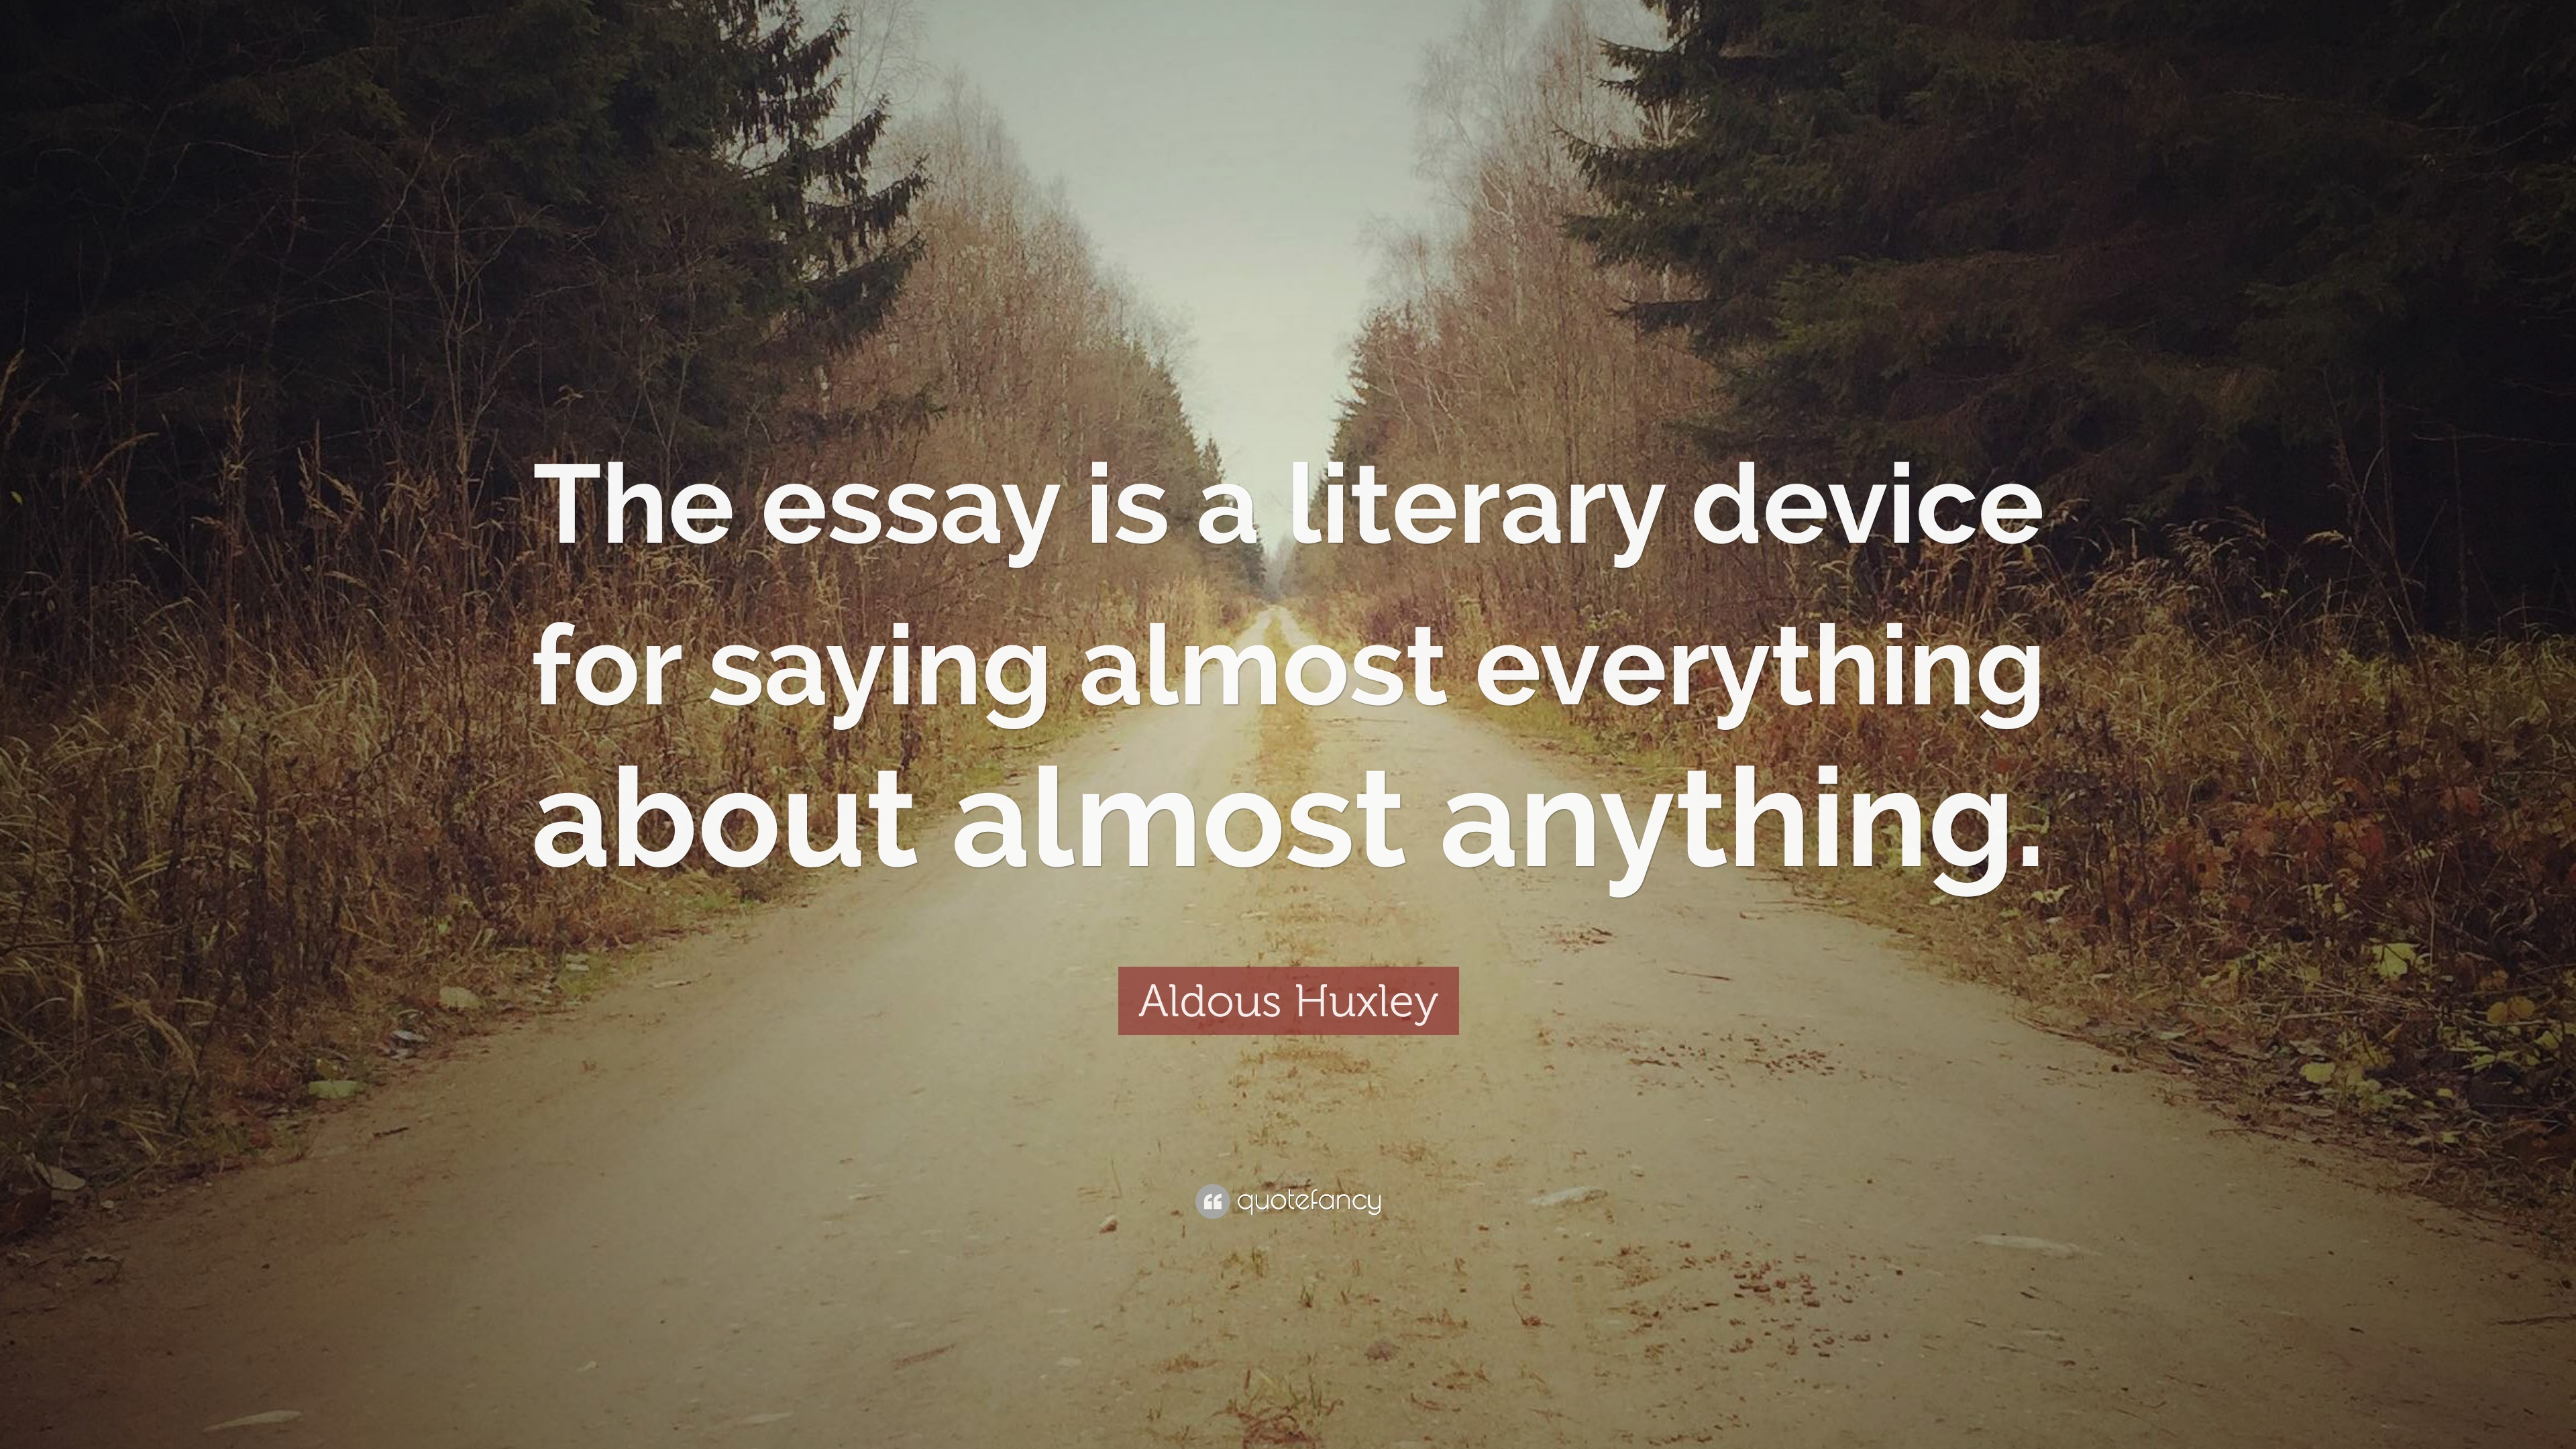 aldous huxley quote the essay is a literary device for saying aldous huxley quote the essay is a literary device for saying almost everything about